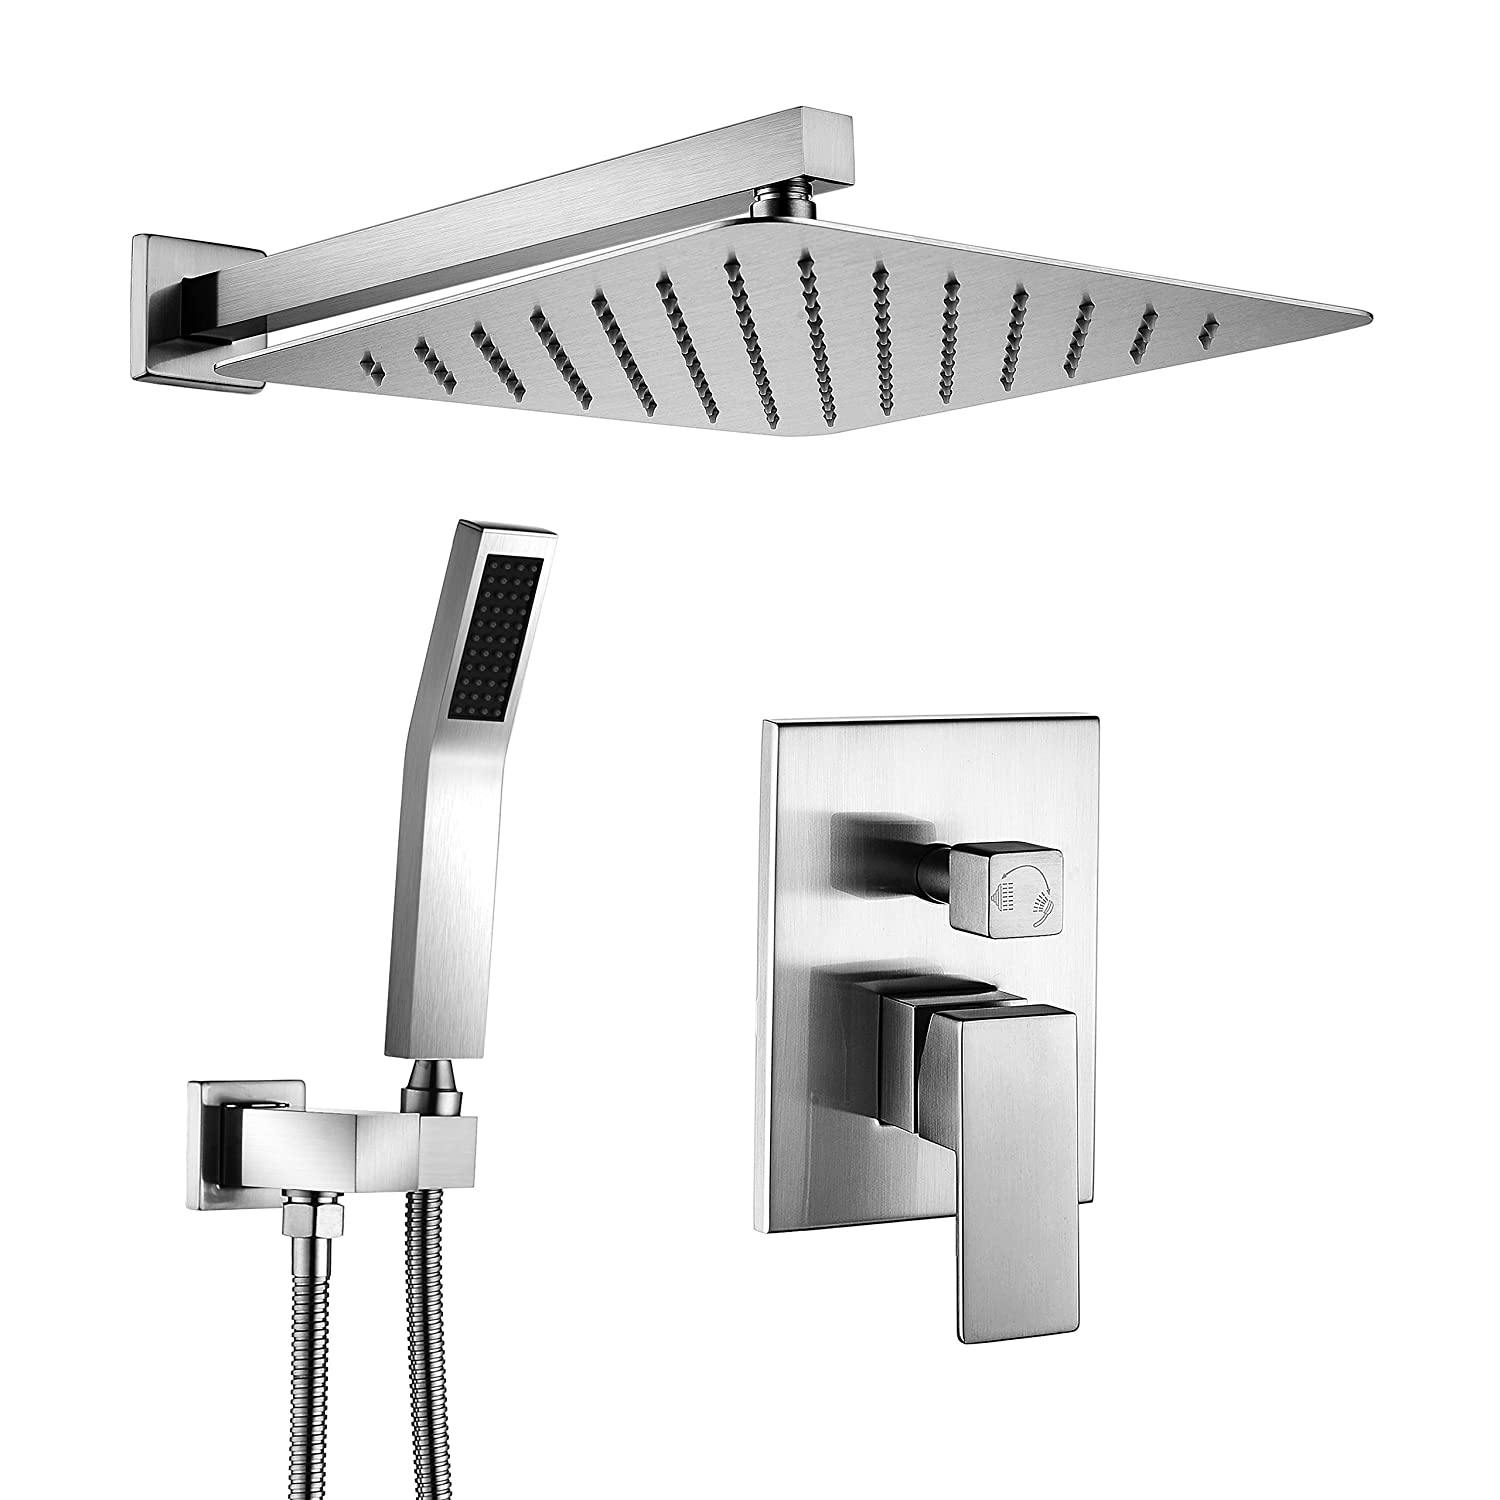 Acefy Atf18001 Bathroom Shower System Brushed Nickel With 12 Inch